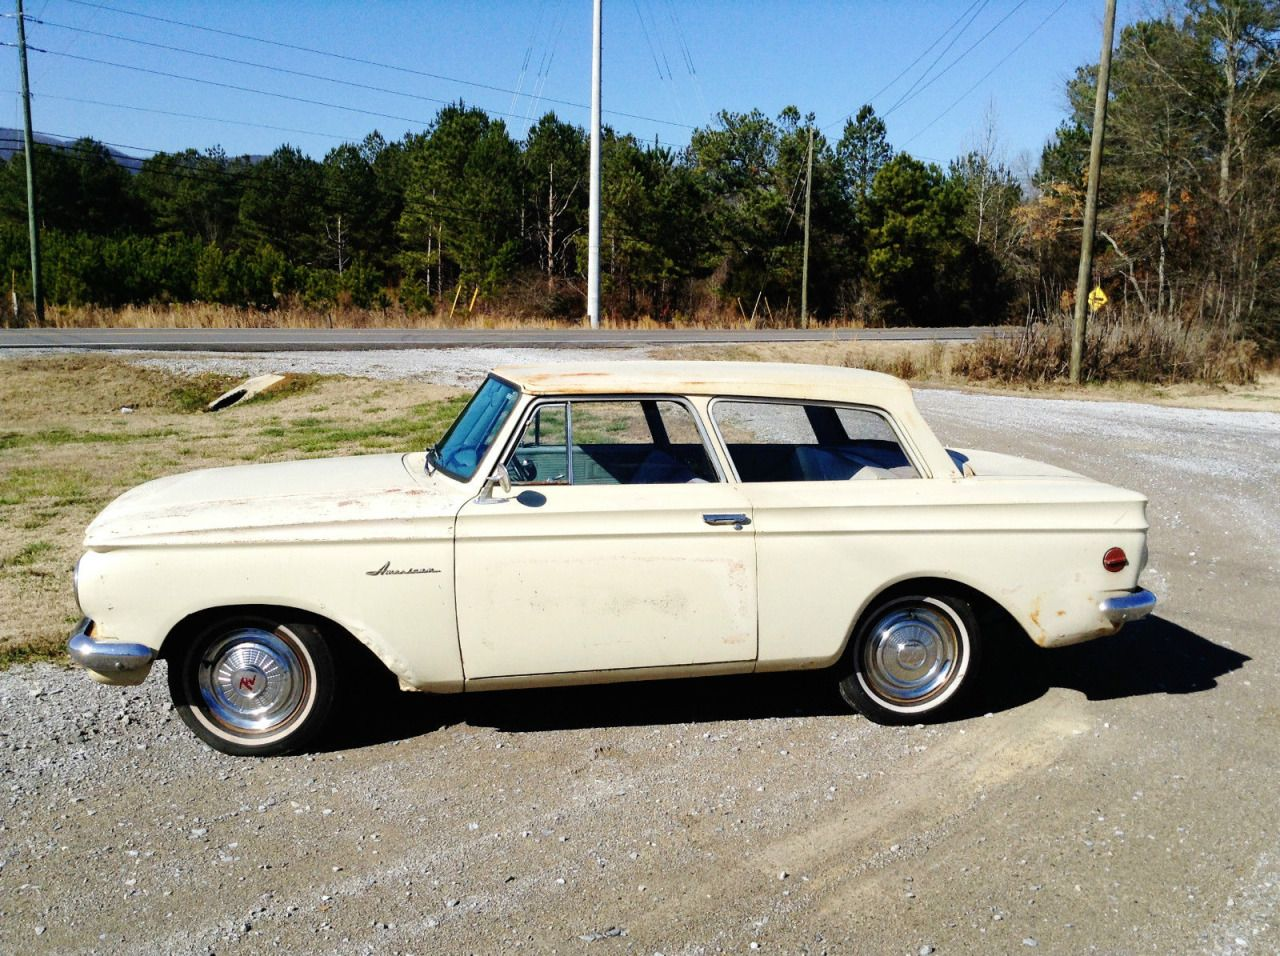 All American Сlic Сars 1962 Rambler Deluxe 2 Door Sedan This Was My First Car When I In High School Mine Red Though